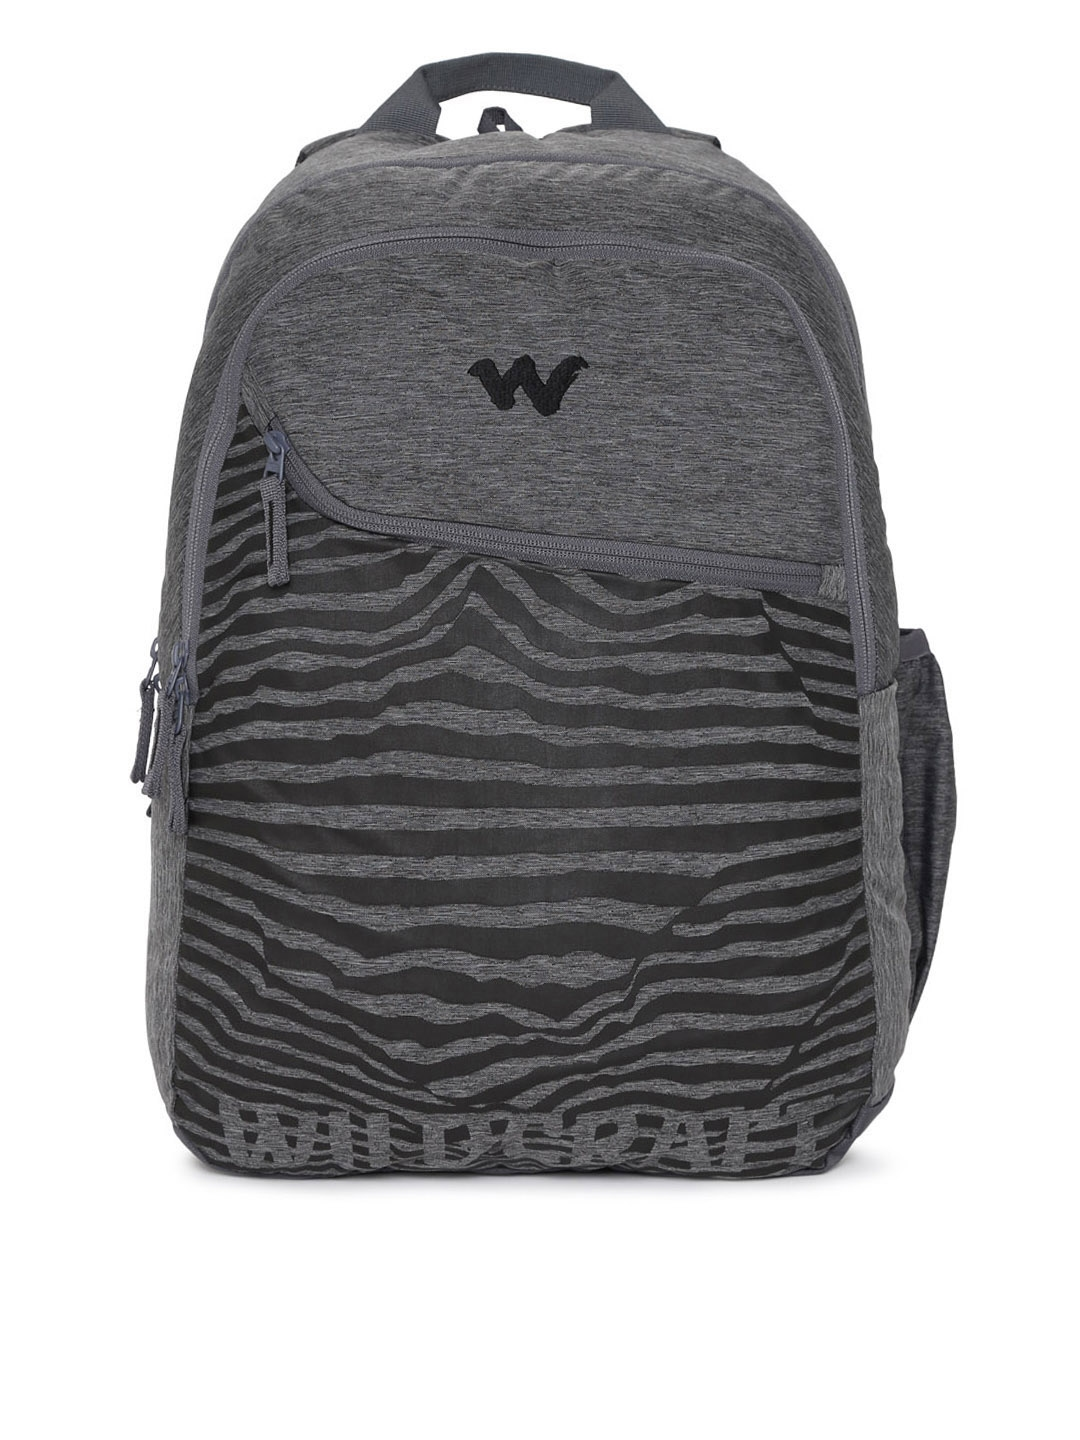 Buy Wildcraft 3 Wild Unisex Grey   Black Graphic Backpack ... 8d9512af22d5e